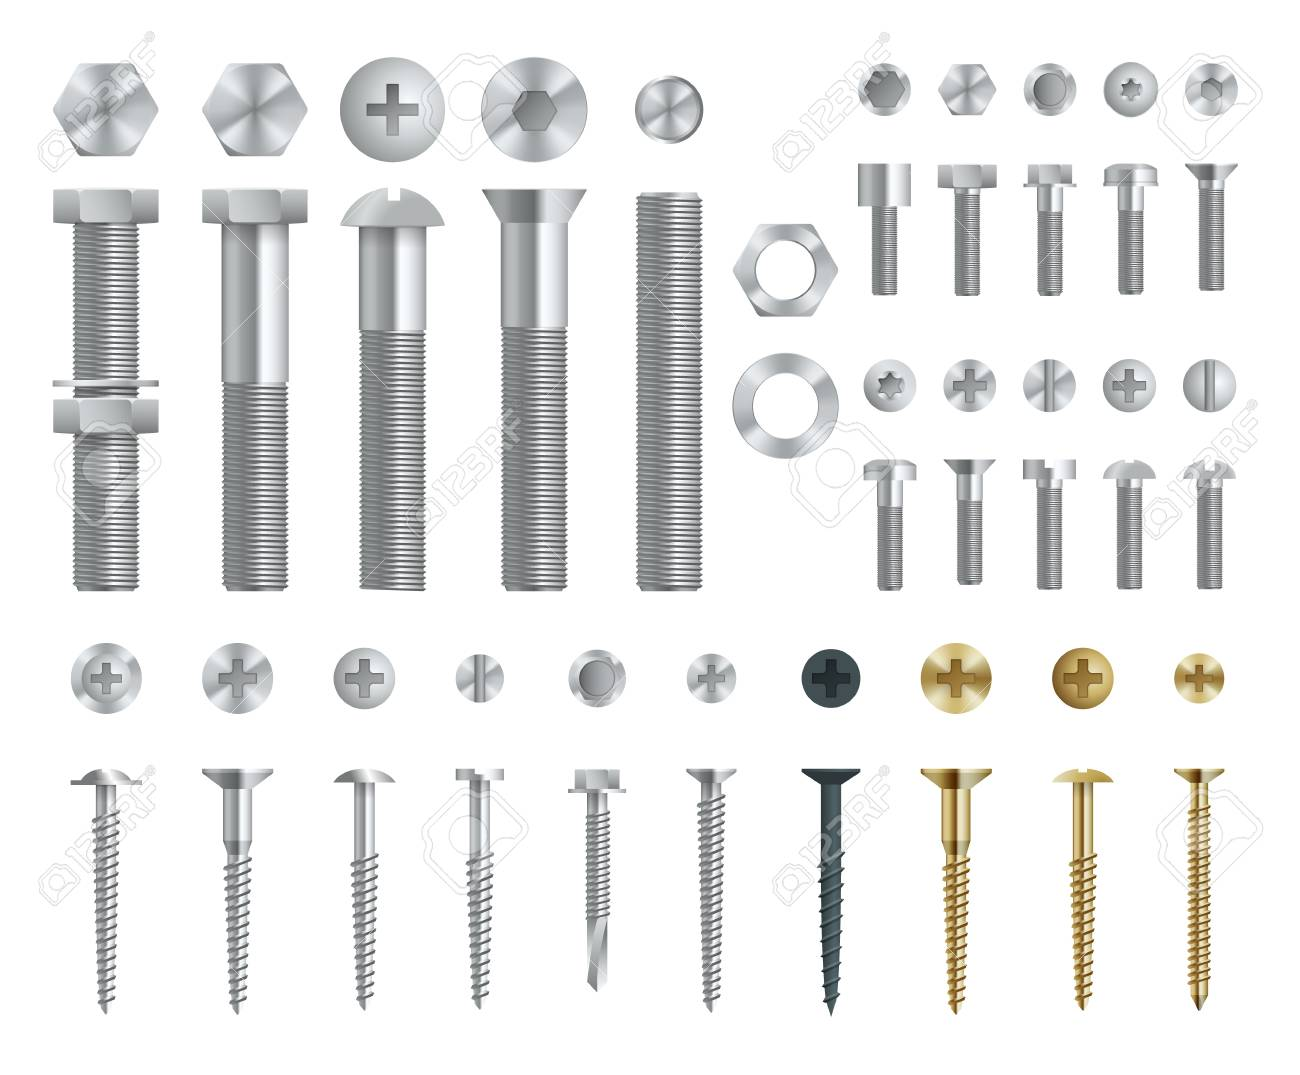 Set of Steel Screws, Bolts, Nuts and Rivets. Top and Side View. Isolated Vector Elements. - 94974033